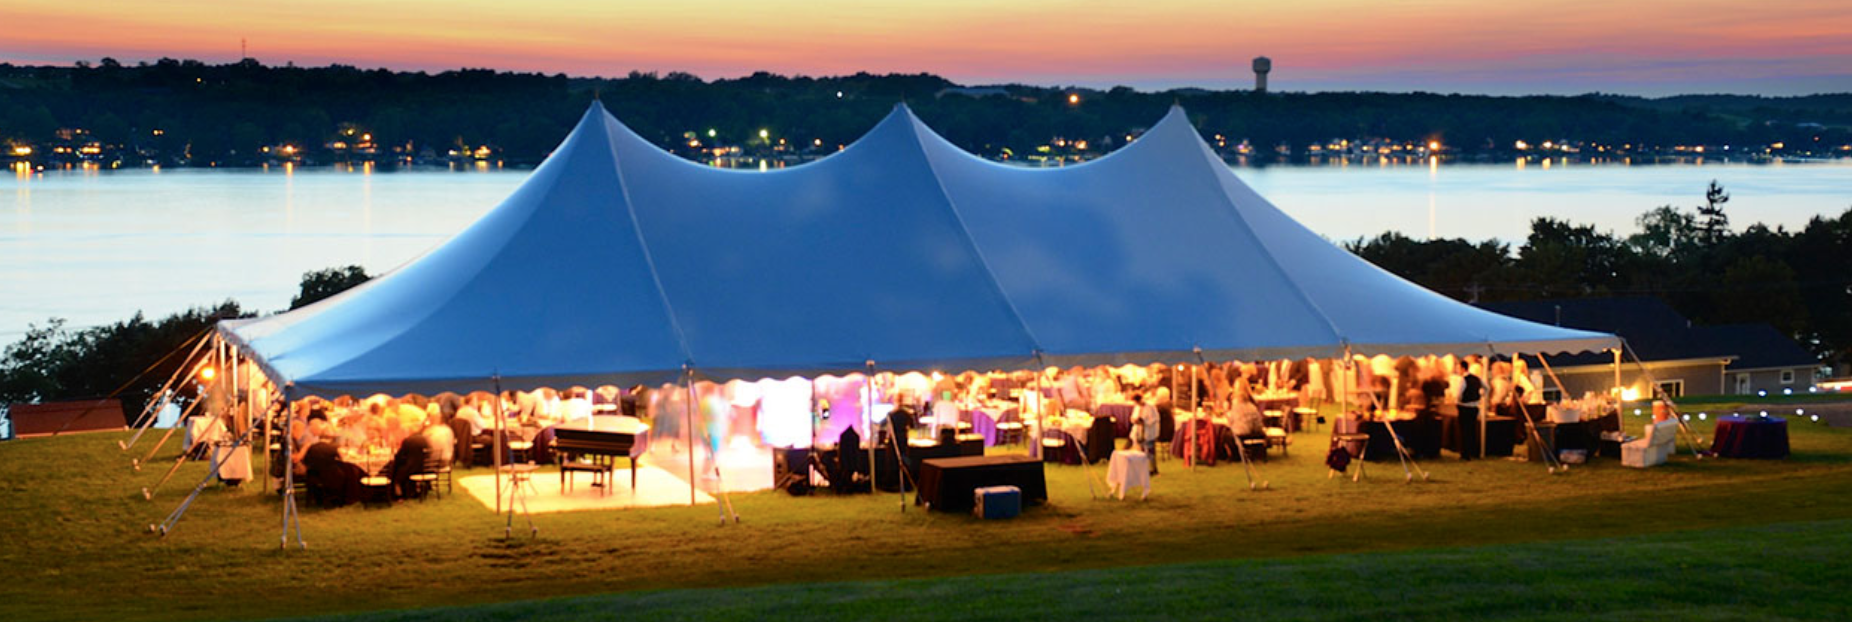 Rope & Pole Tent Rentals